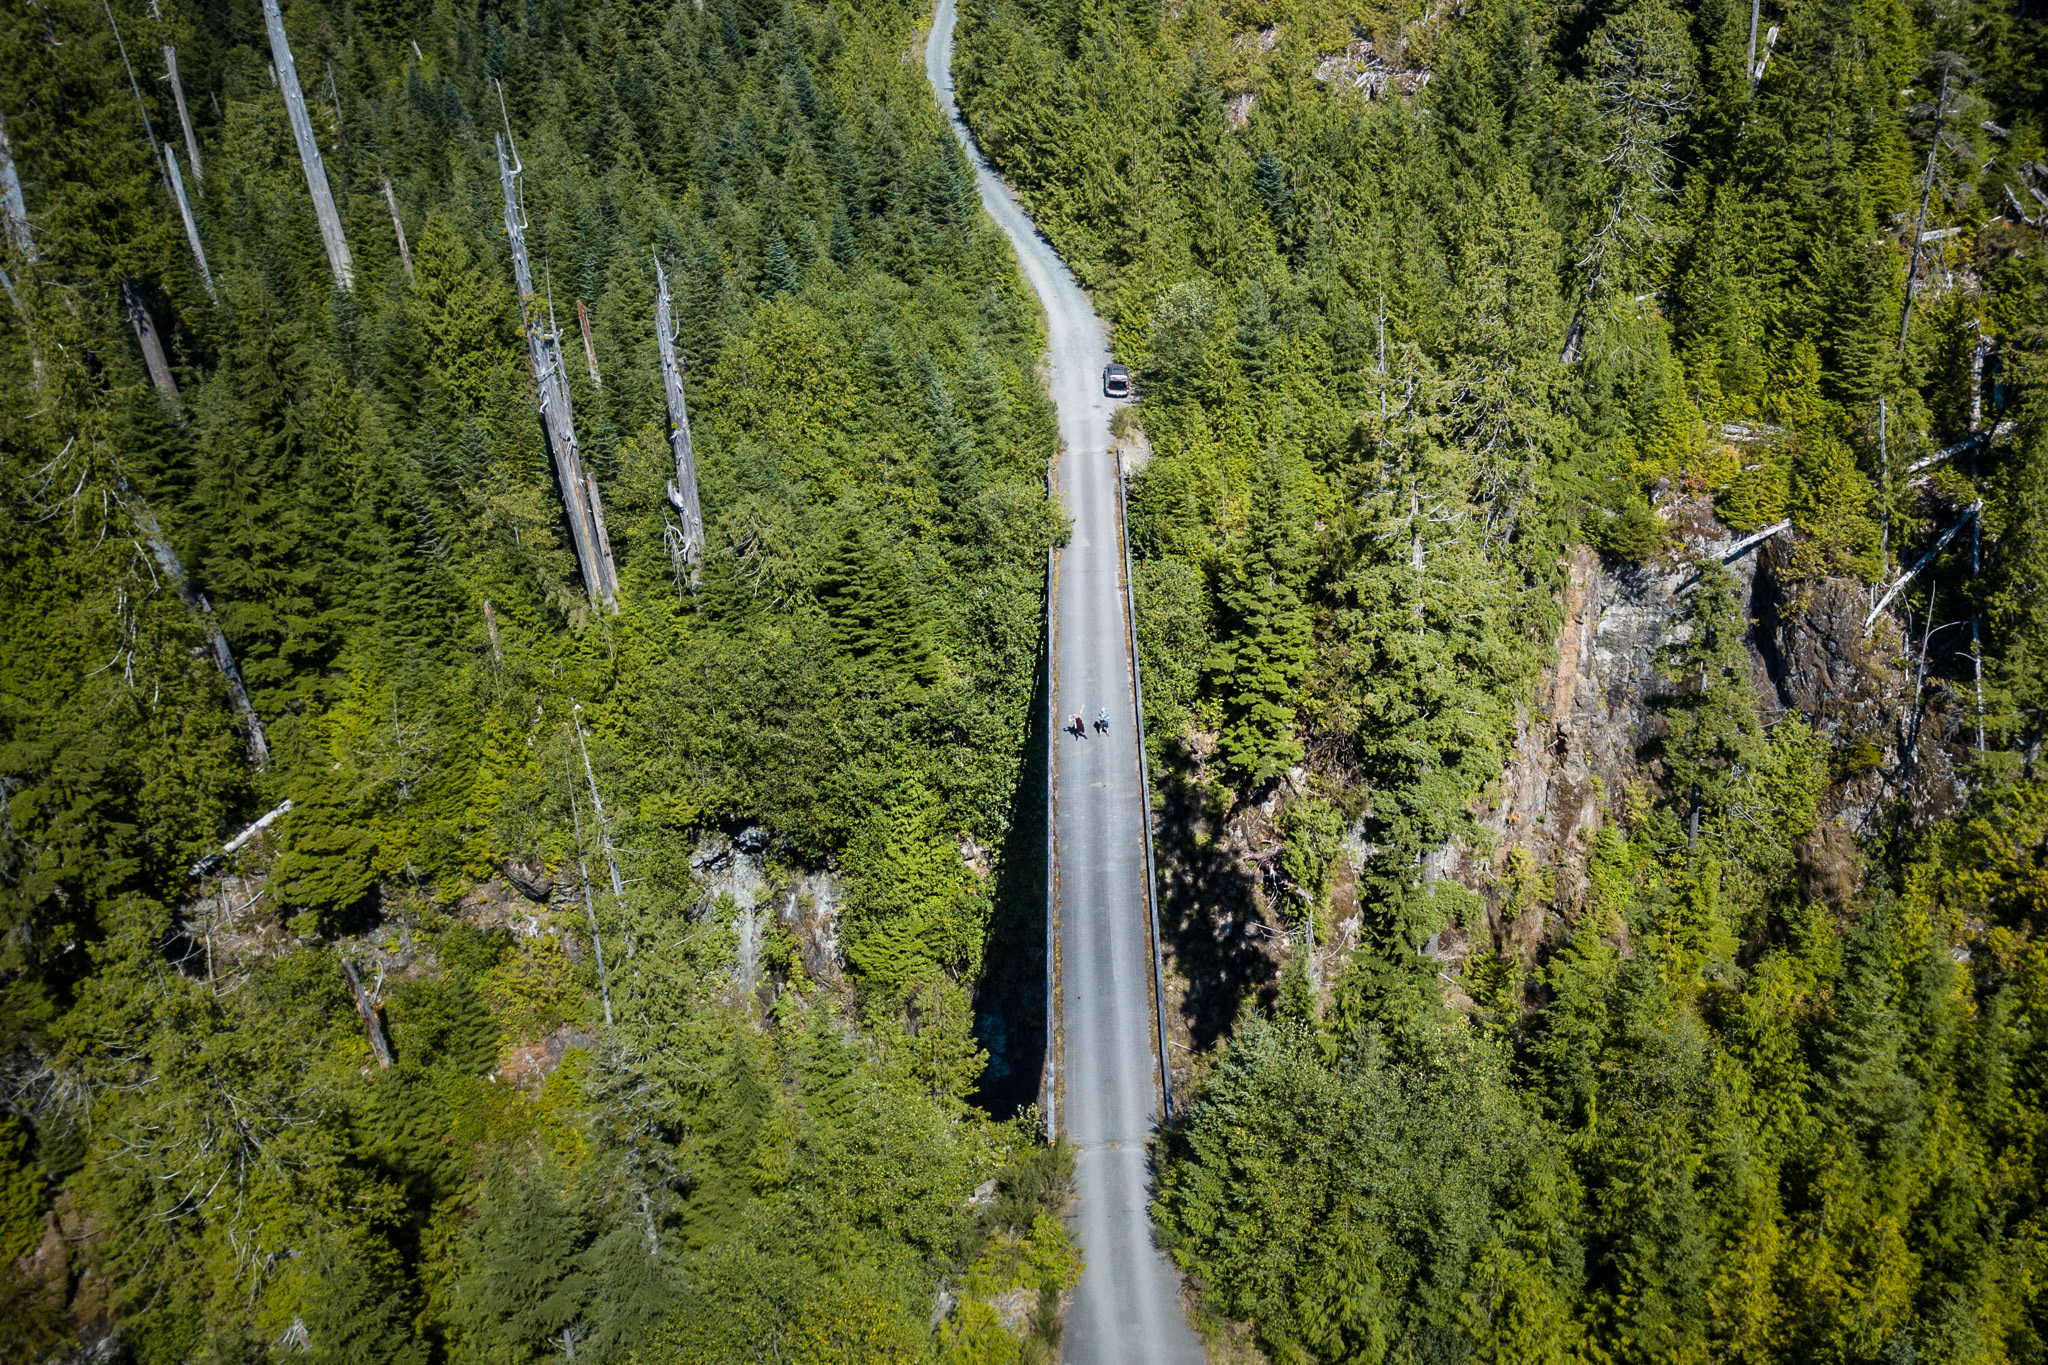 Travelling further up the coast to just outside Port Renfrew, where we had to get a shot using the drone of this bridge across a giant river valley. Hard to tell the perspective, but it's probably 100 feet down to the water below the bridge! That's us standing in the middle.